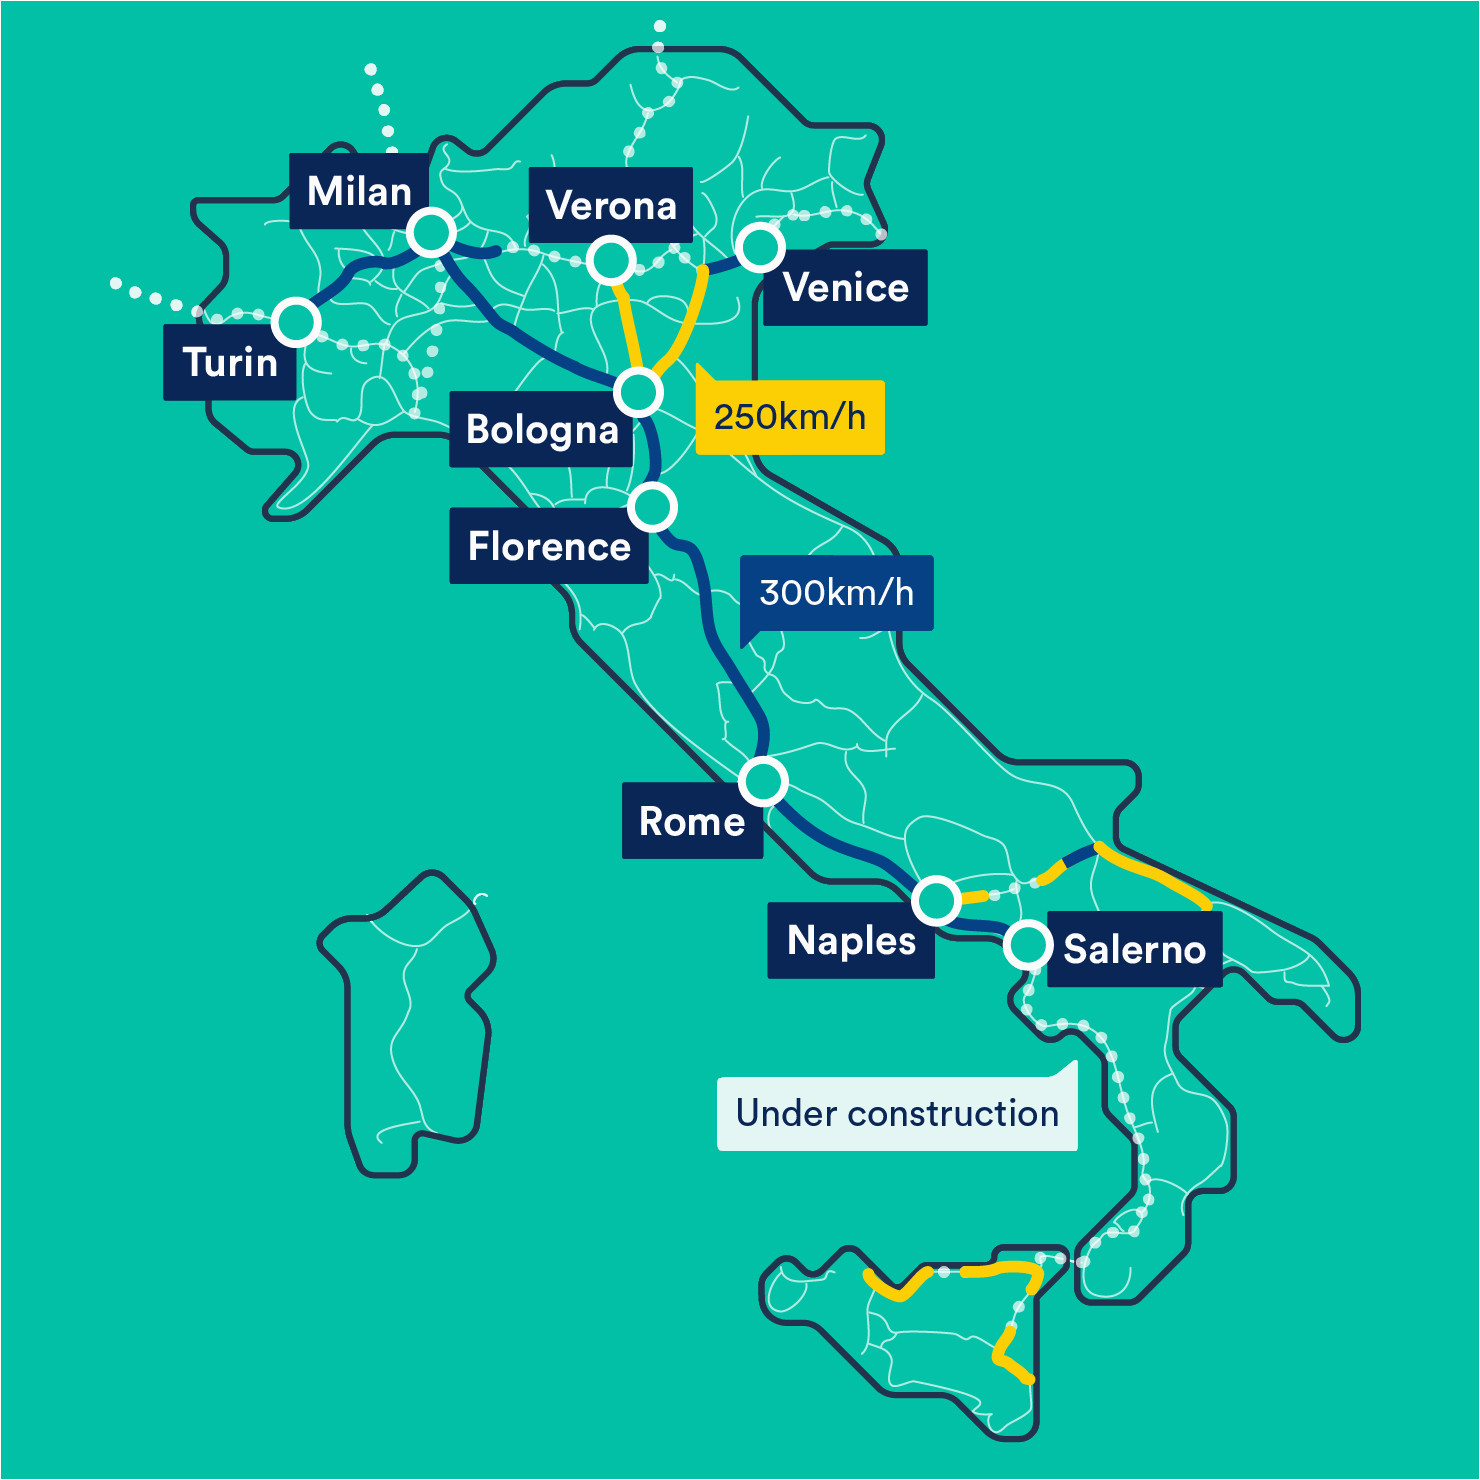 trenitalia map with train descriptions and links to purchasing